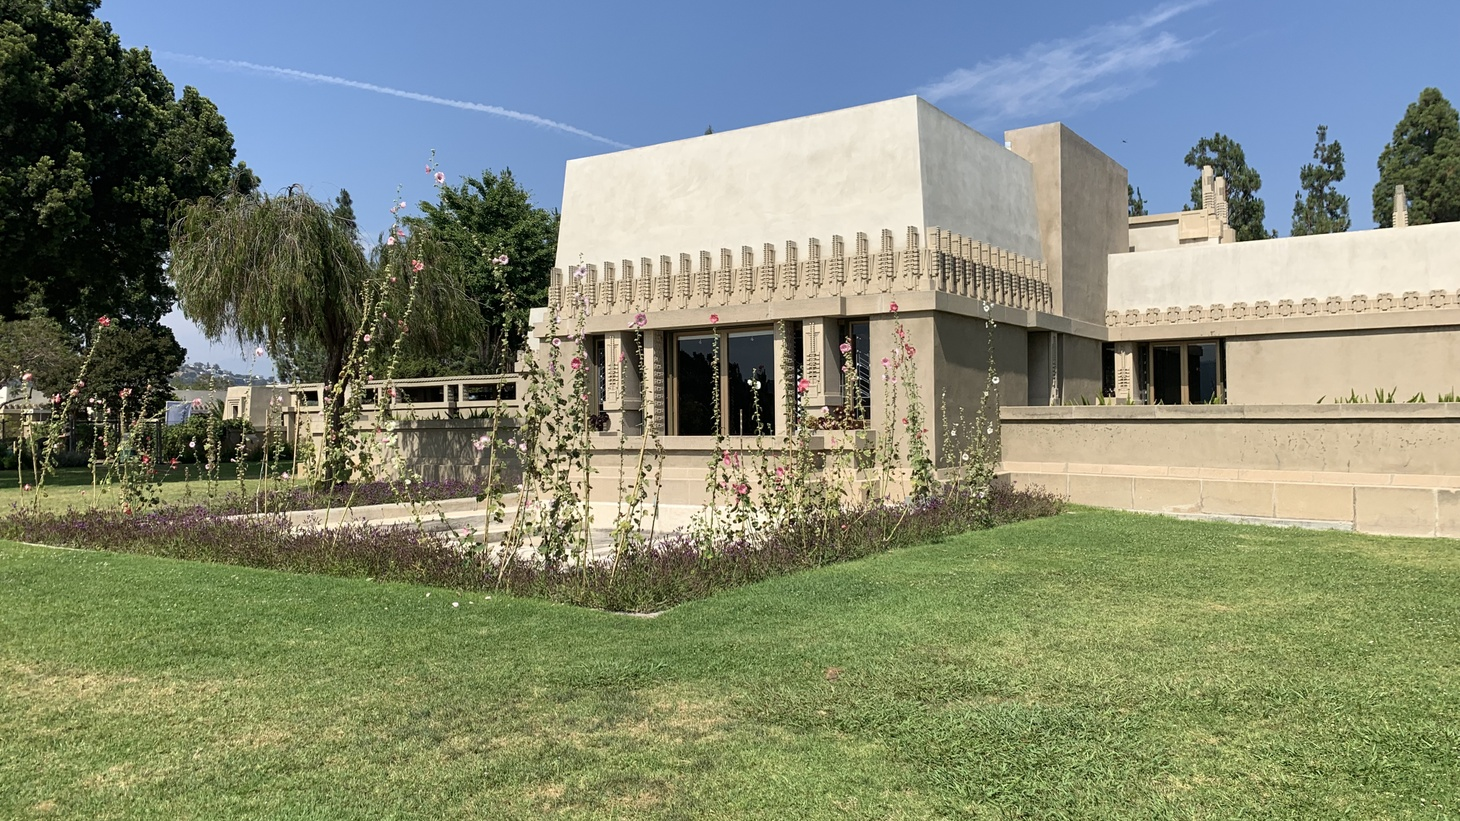 Views of the Hollyhock House, designed by Frank Lloyd Wright for theater producer and oil heiress Aline Barnsall. The house was named as one of eight Wright-designed structures to the list of UNESCO World Heritage Sites.